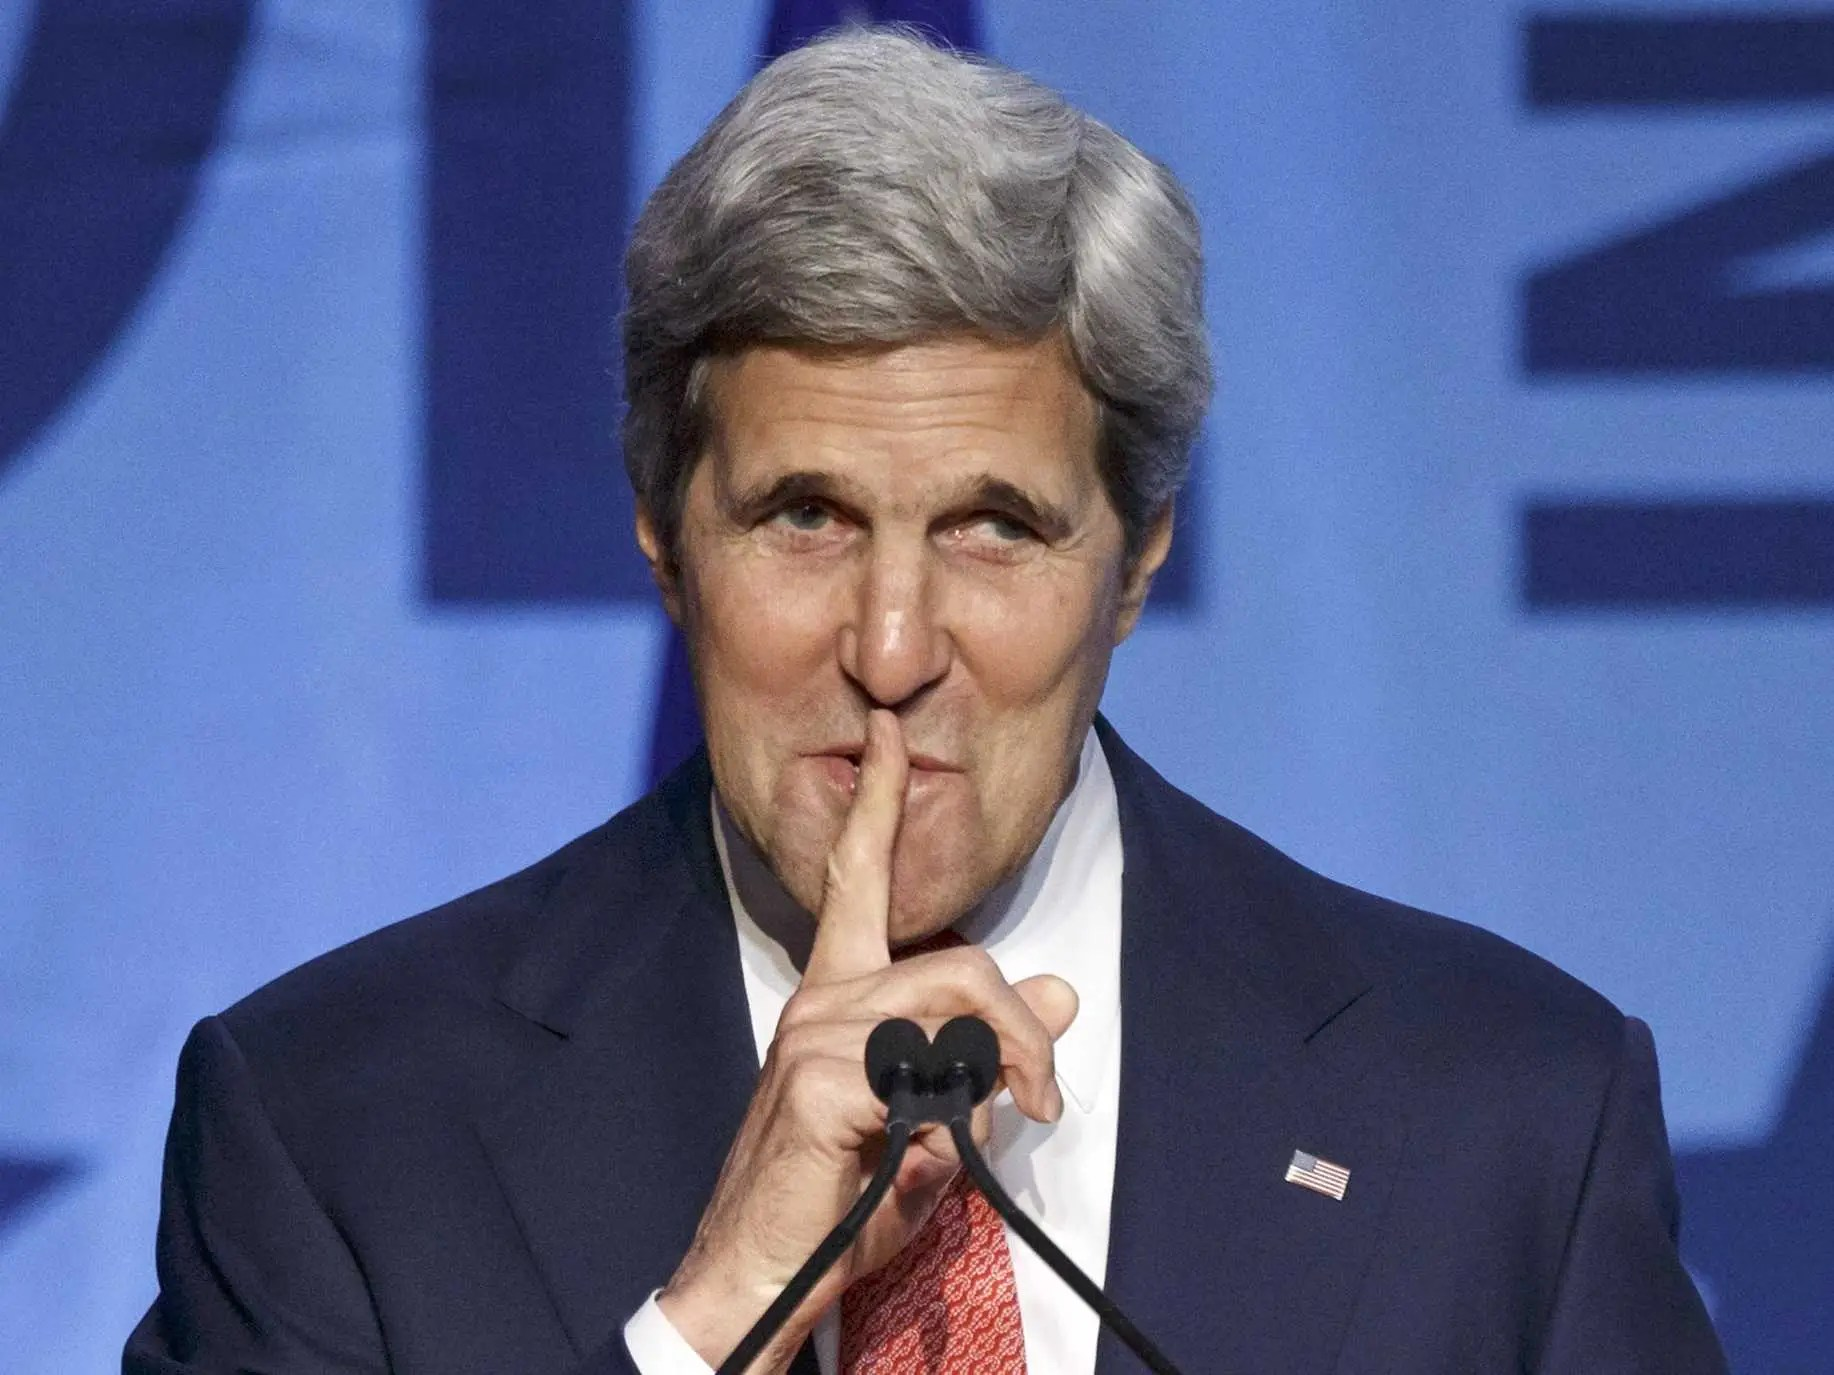 https://i0.wp.com/static1.businessinsider.com/image/535ea70869bedd84679c9161/john-kerry-is-getting-slammed-for-using-the-a-word-with-israel.jpg